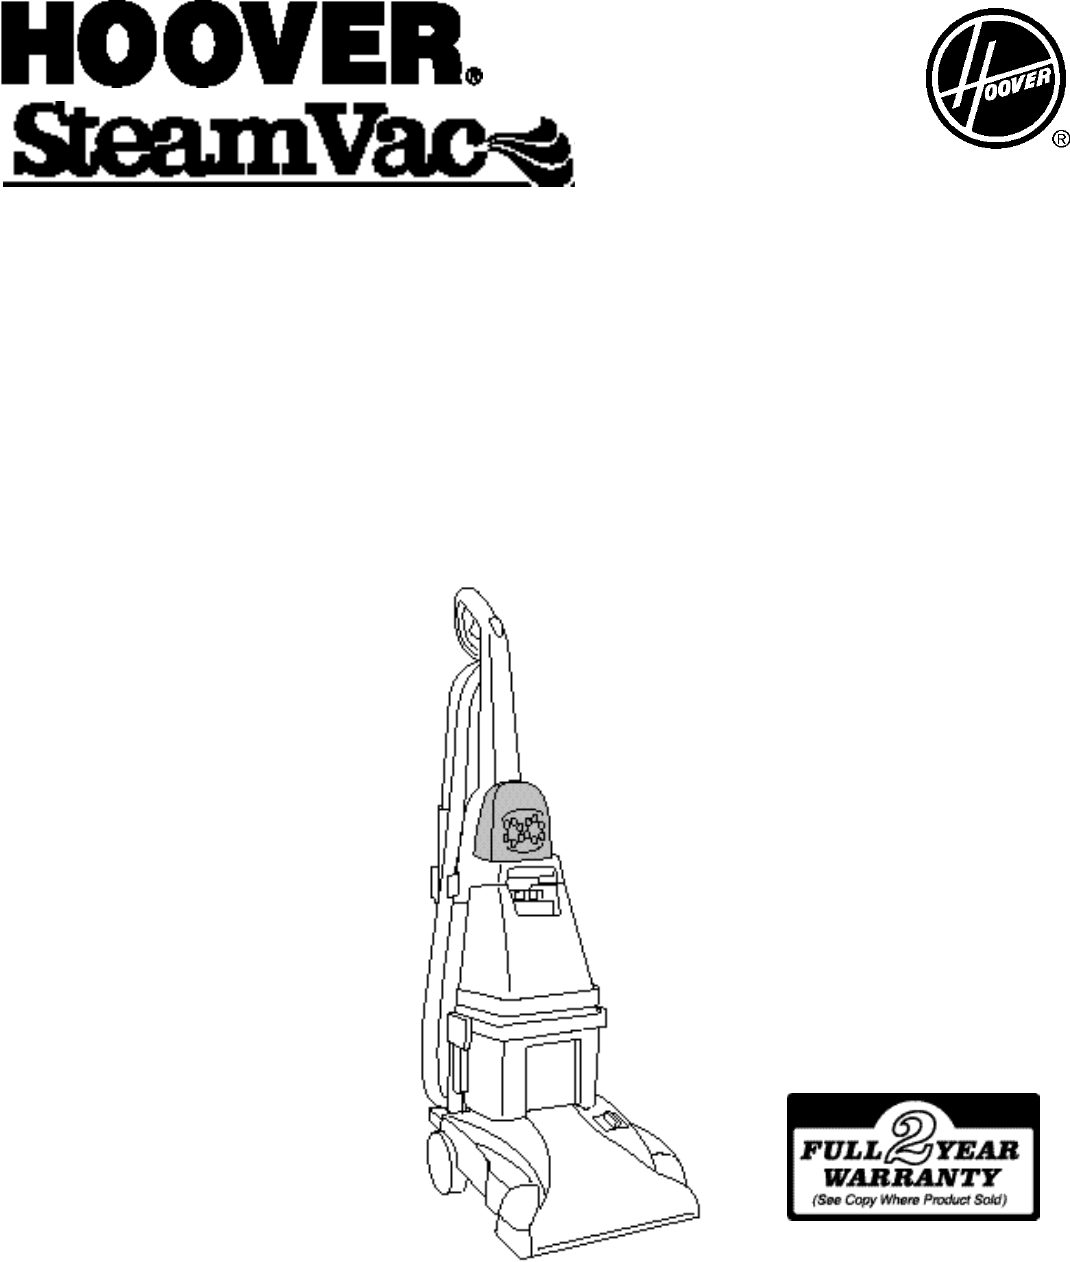 Hoover Spin Scrub Steam Cleaner Instructions